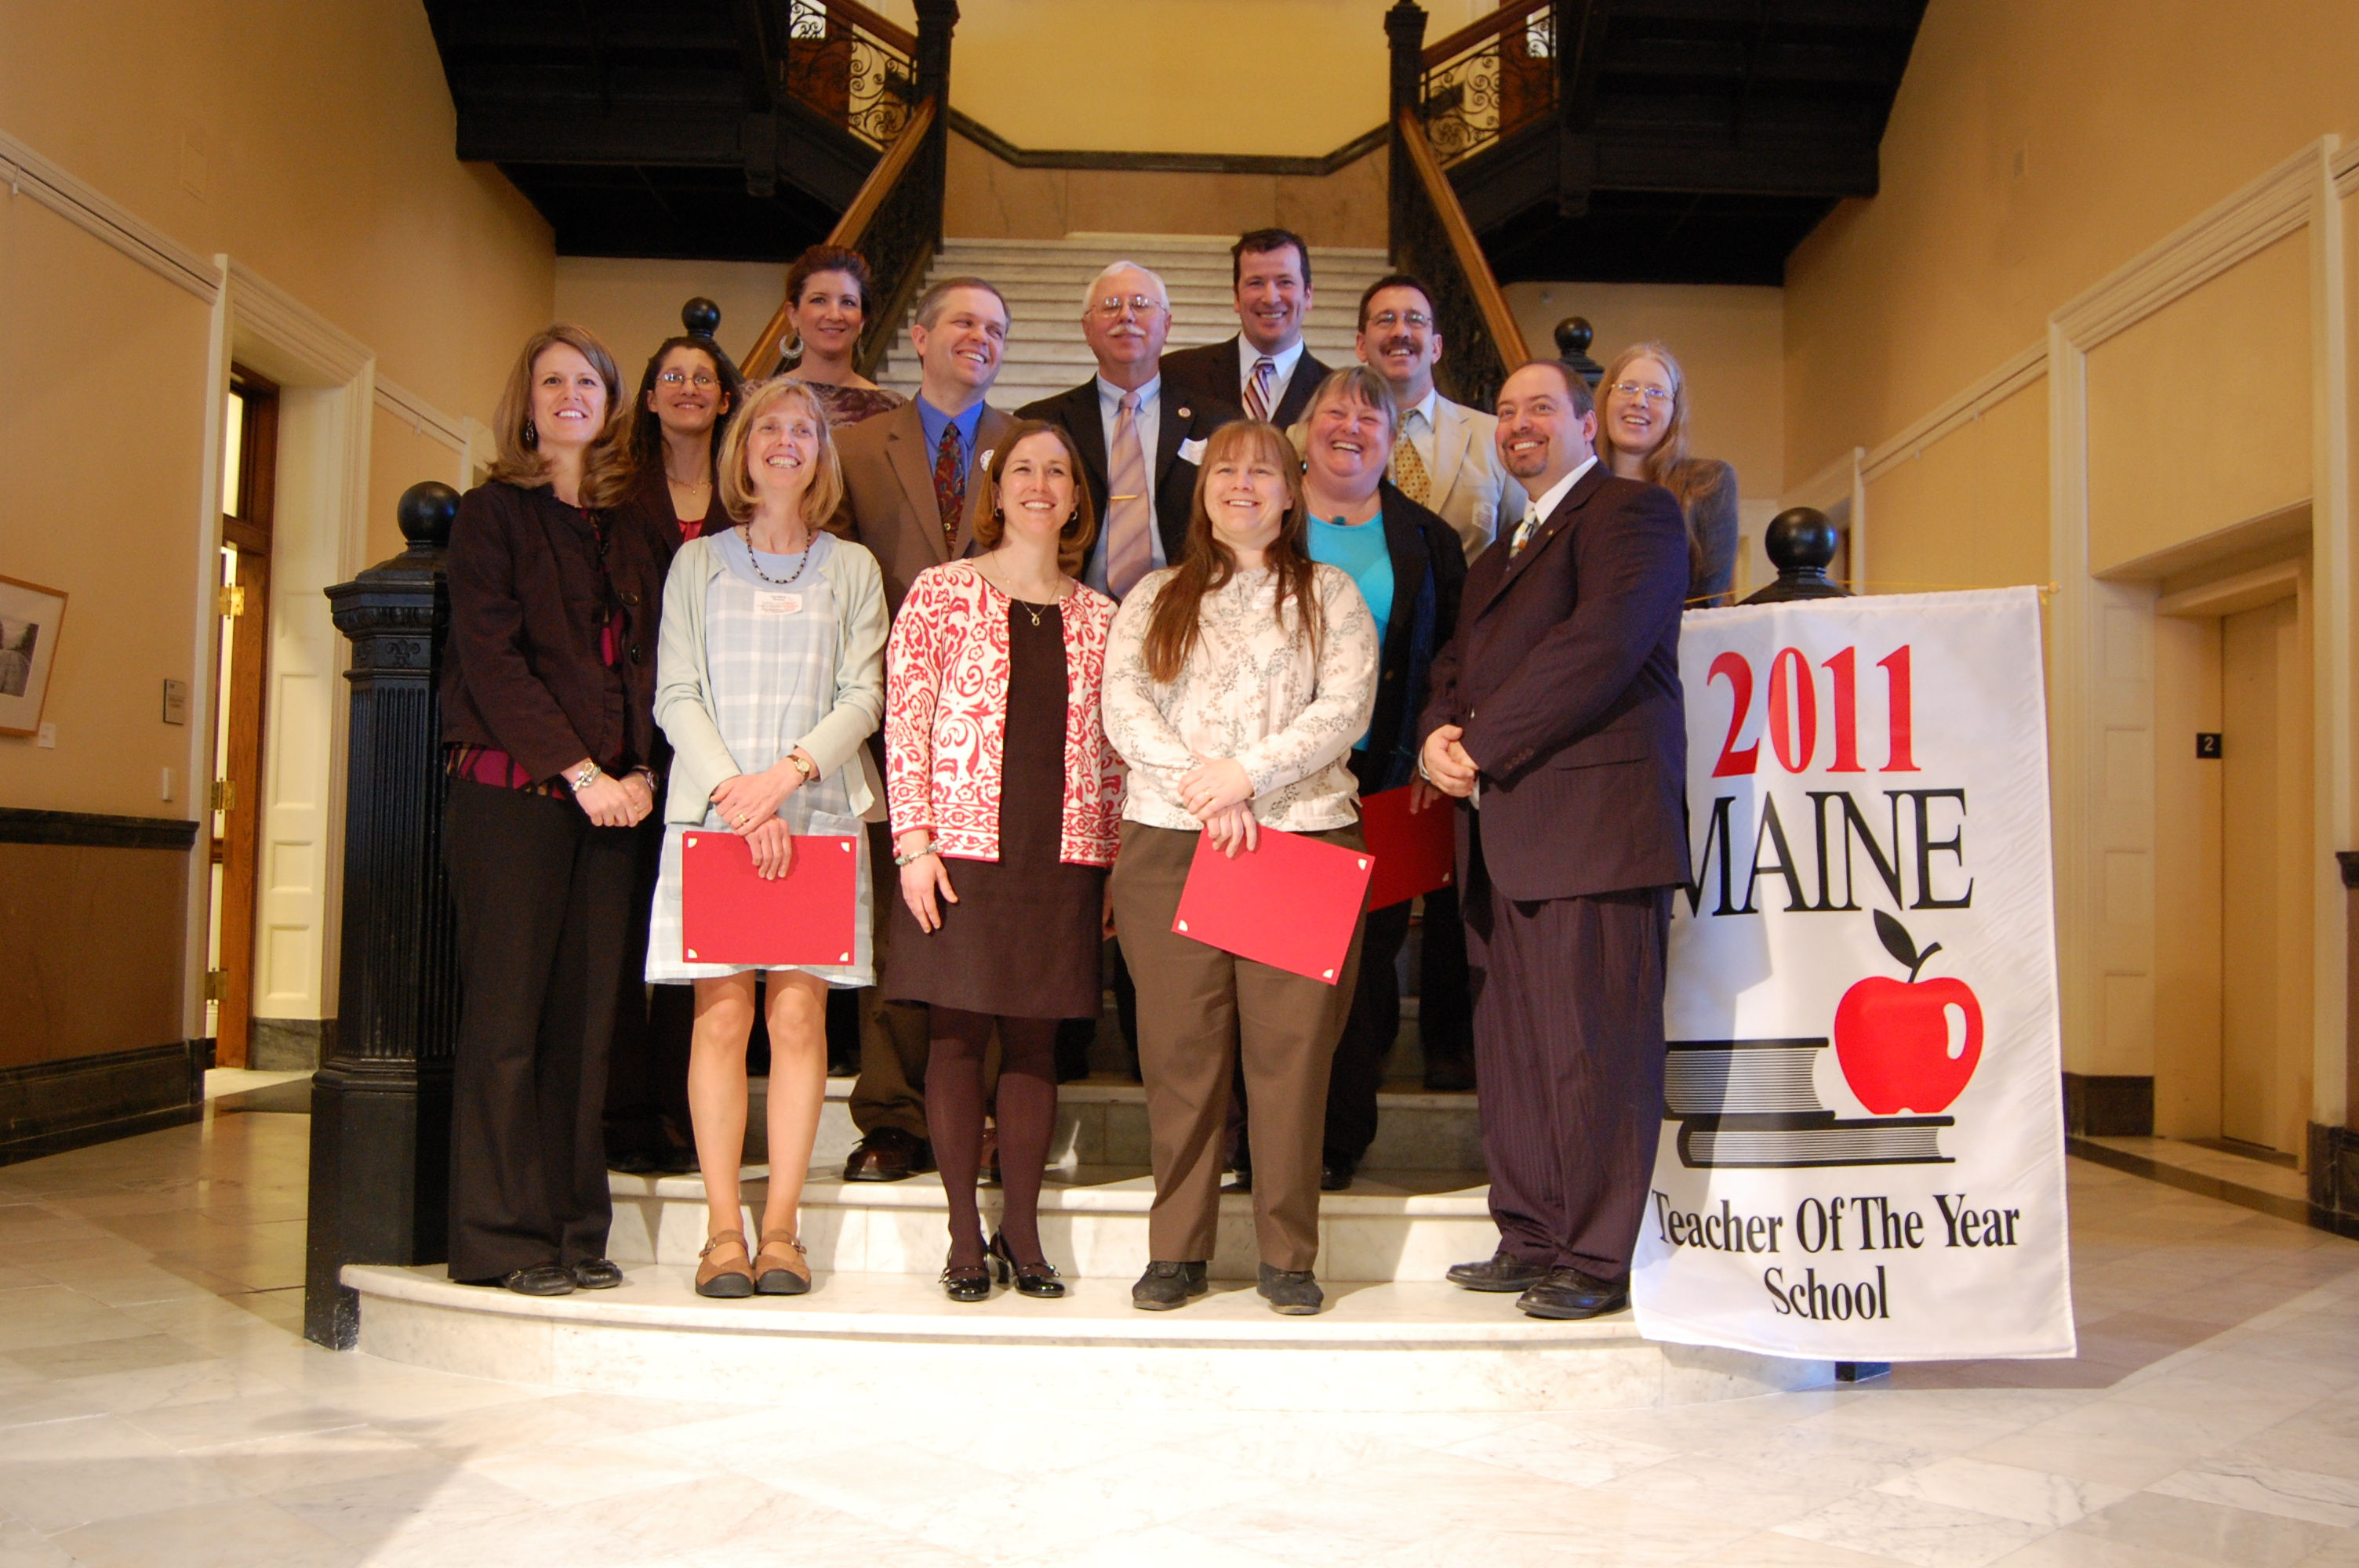 2011 Maine Teacher of the Year nominees